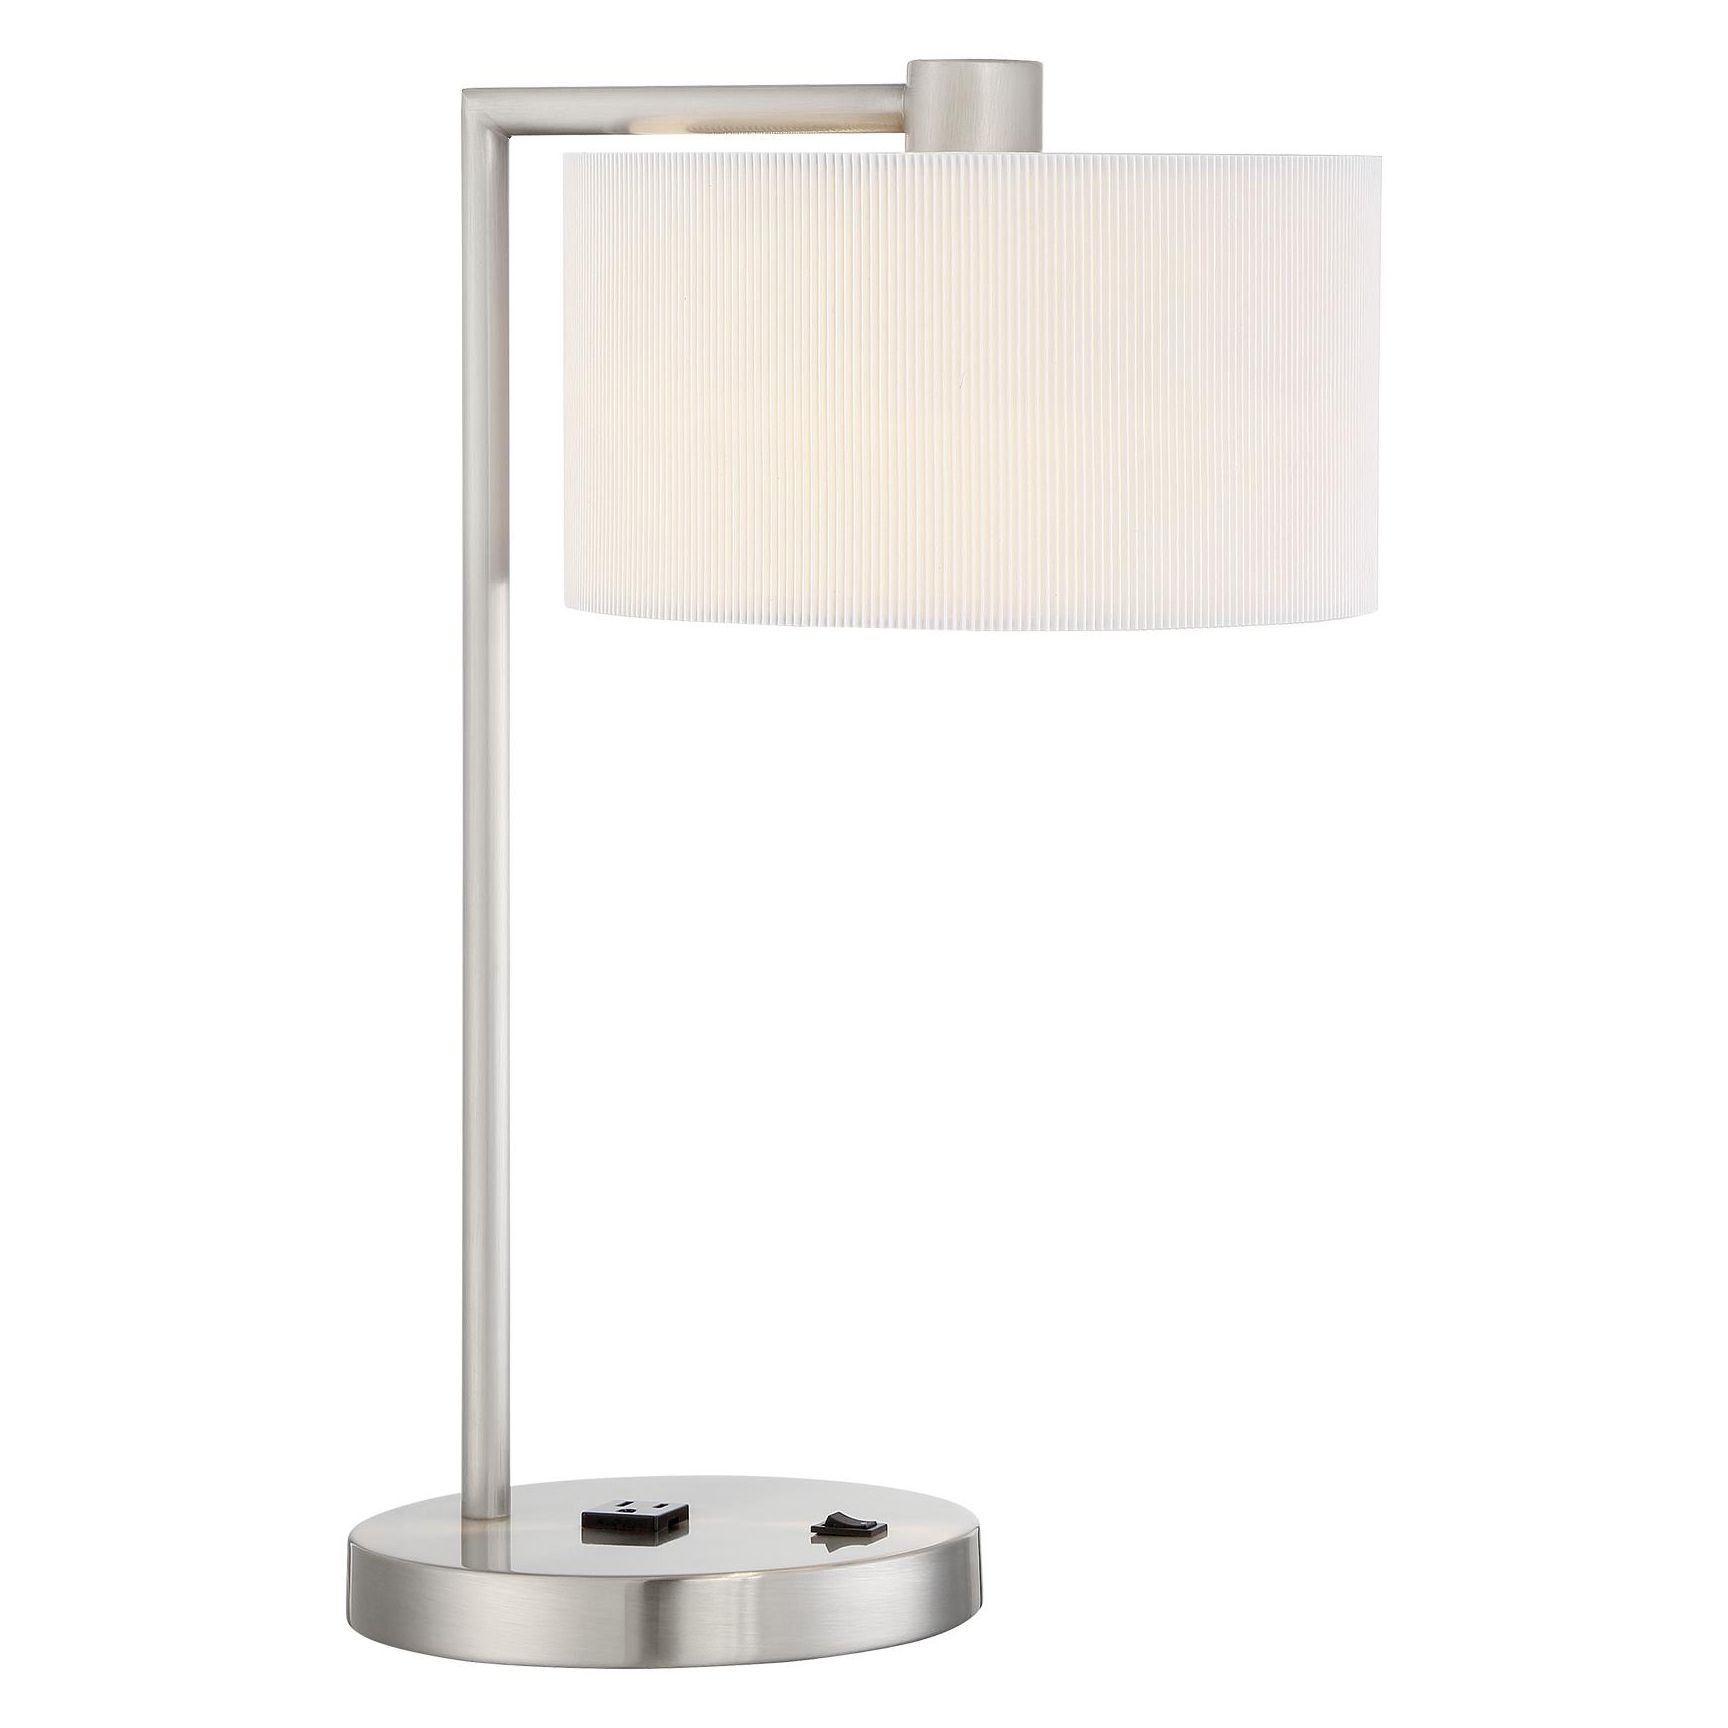 The Park Table Lamp features a Brushed Nickel finish with